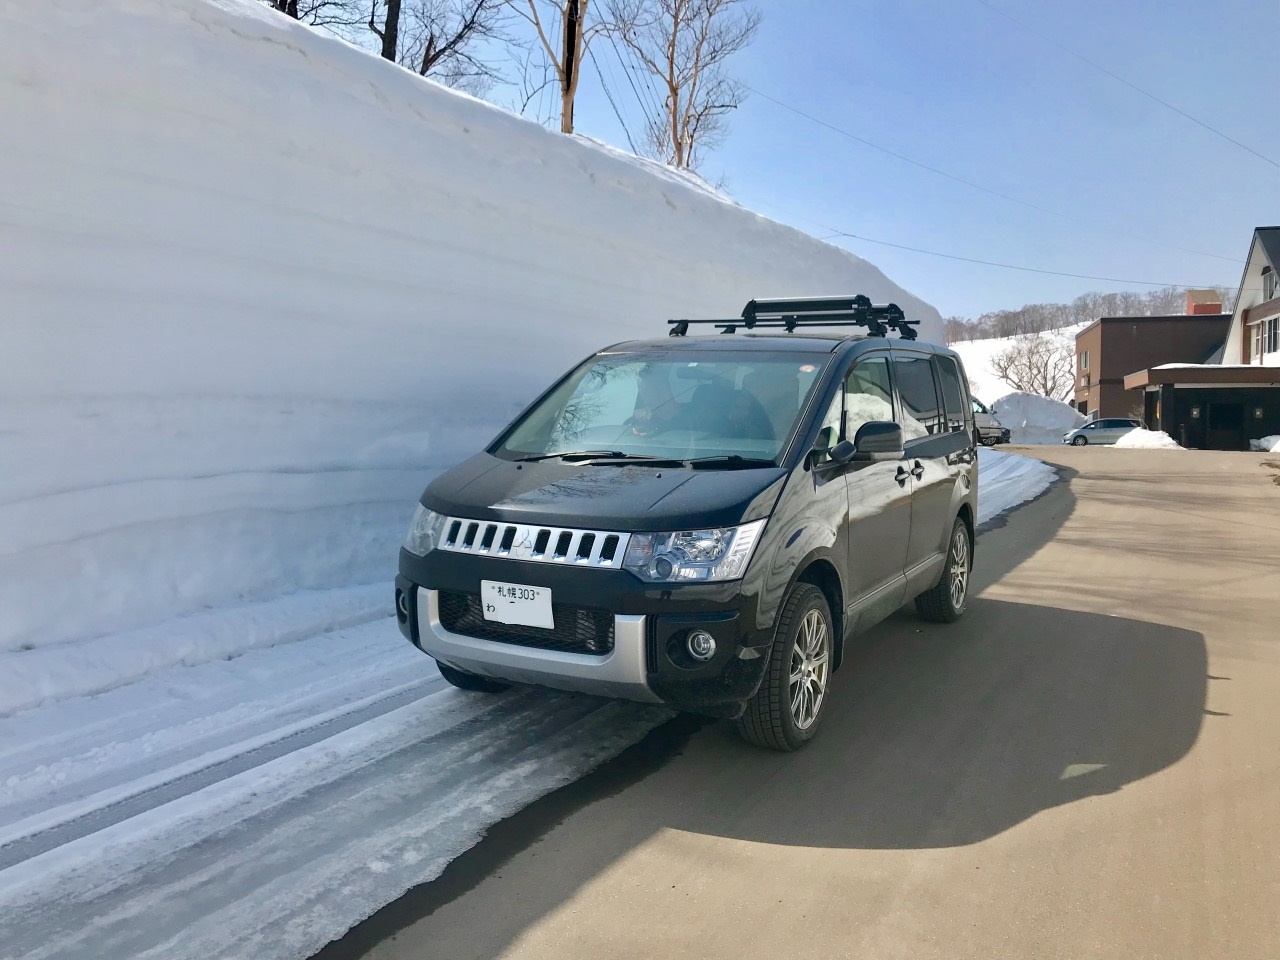 We had a fantastic 10 days,driving the Delica from Chitosea to Grand Hirafu, skiing and sightseeing